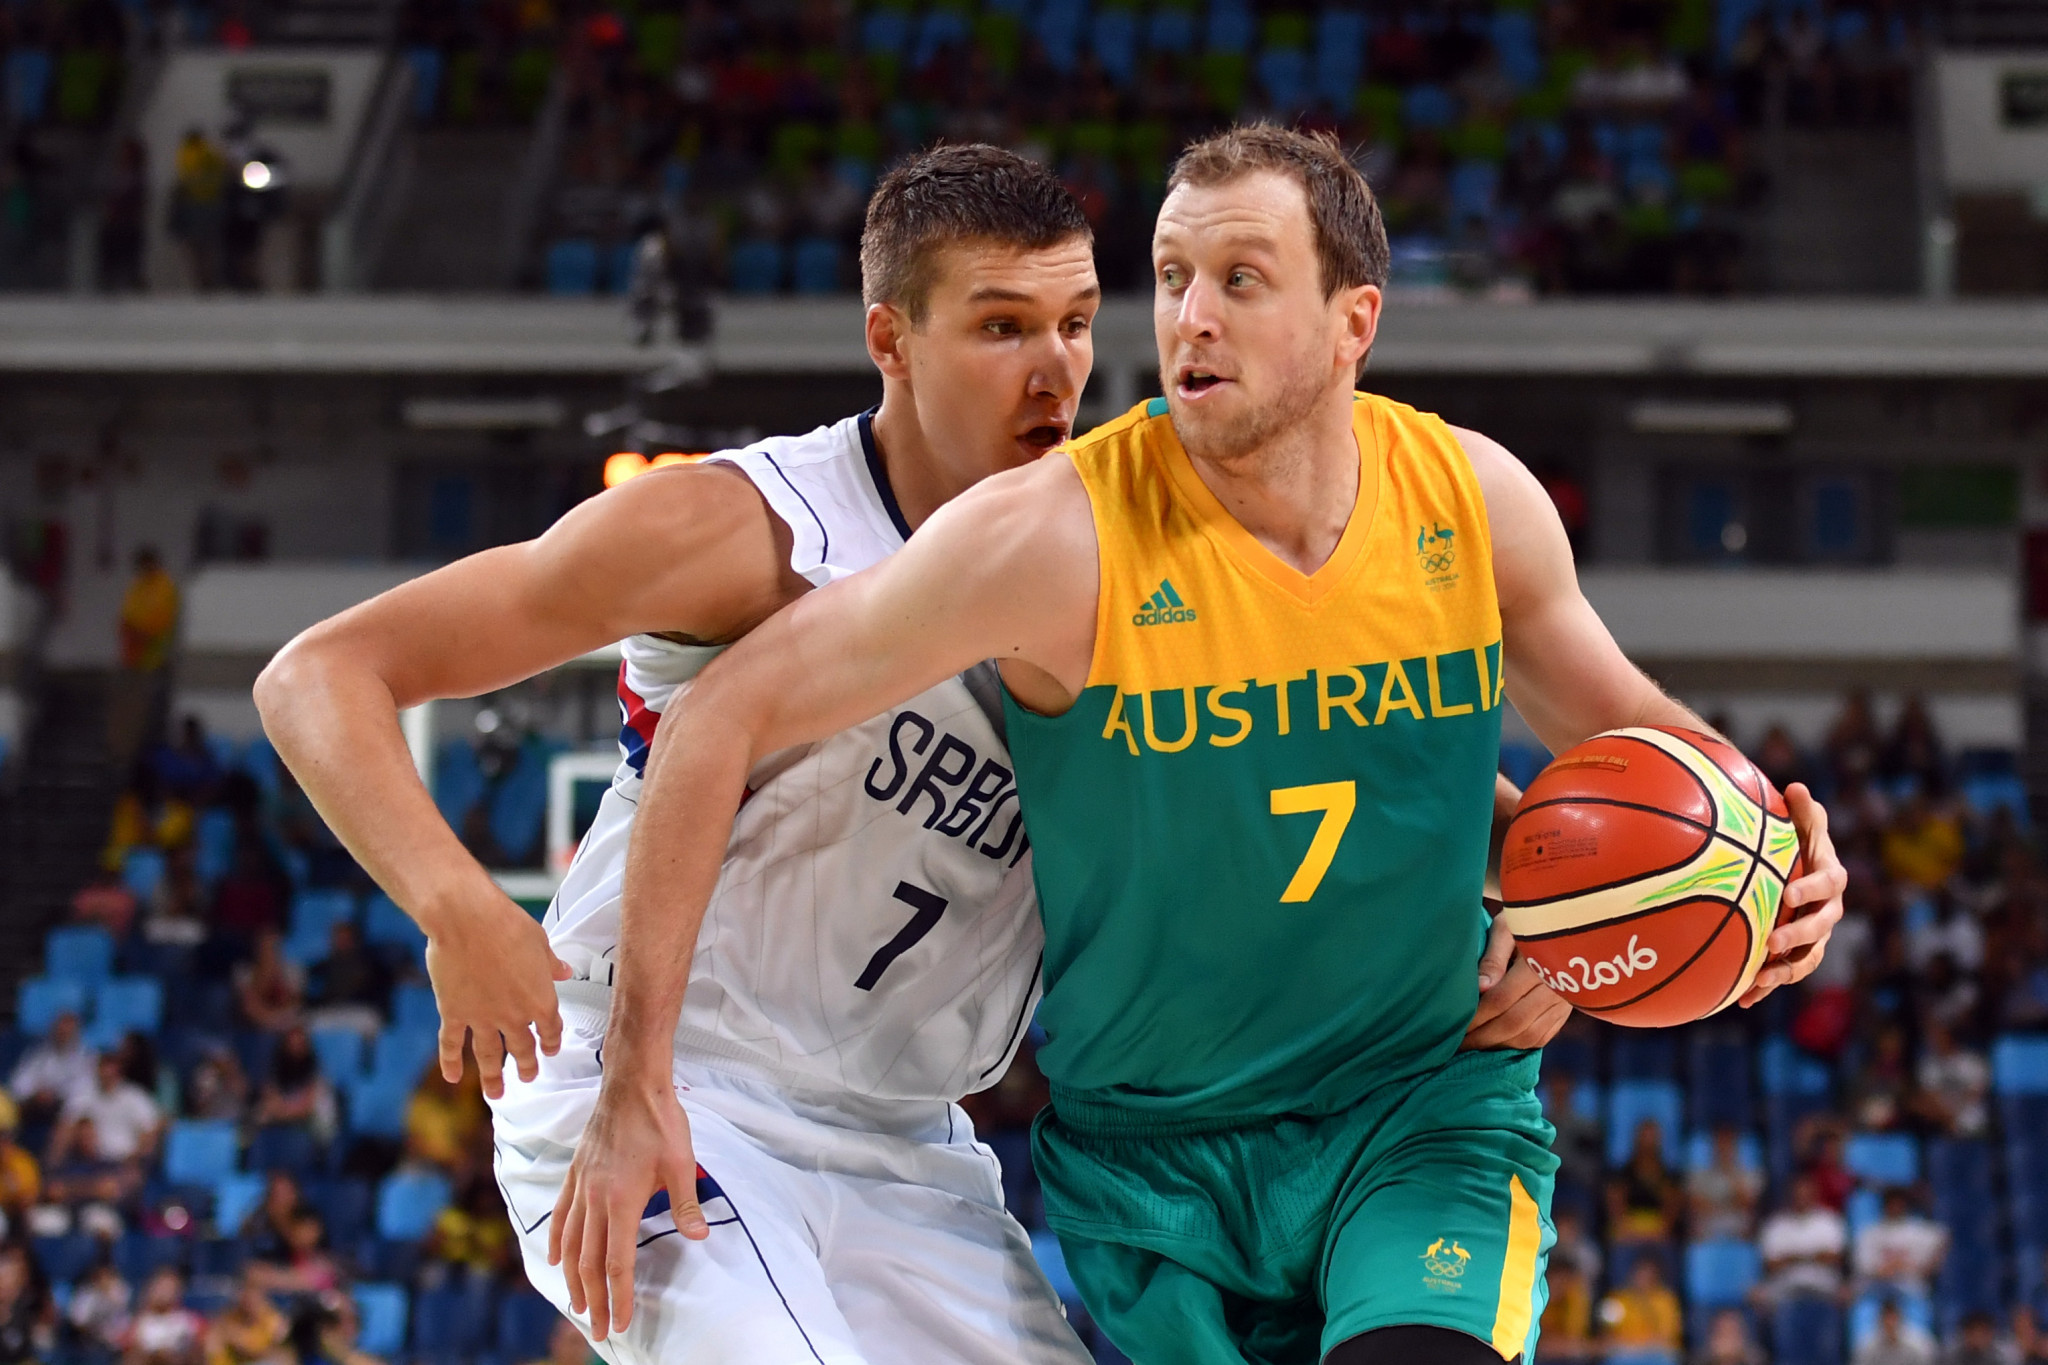 Joe Ingles is on track to represent Australia at his fourth Olympic Games at Tokyo 2020 ©Getty Images